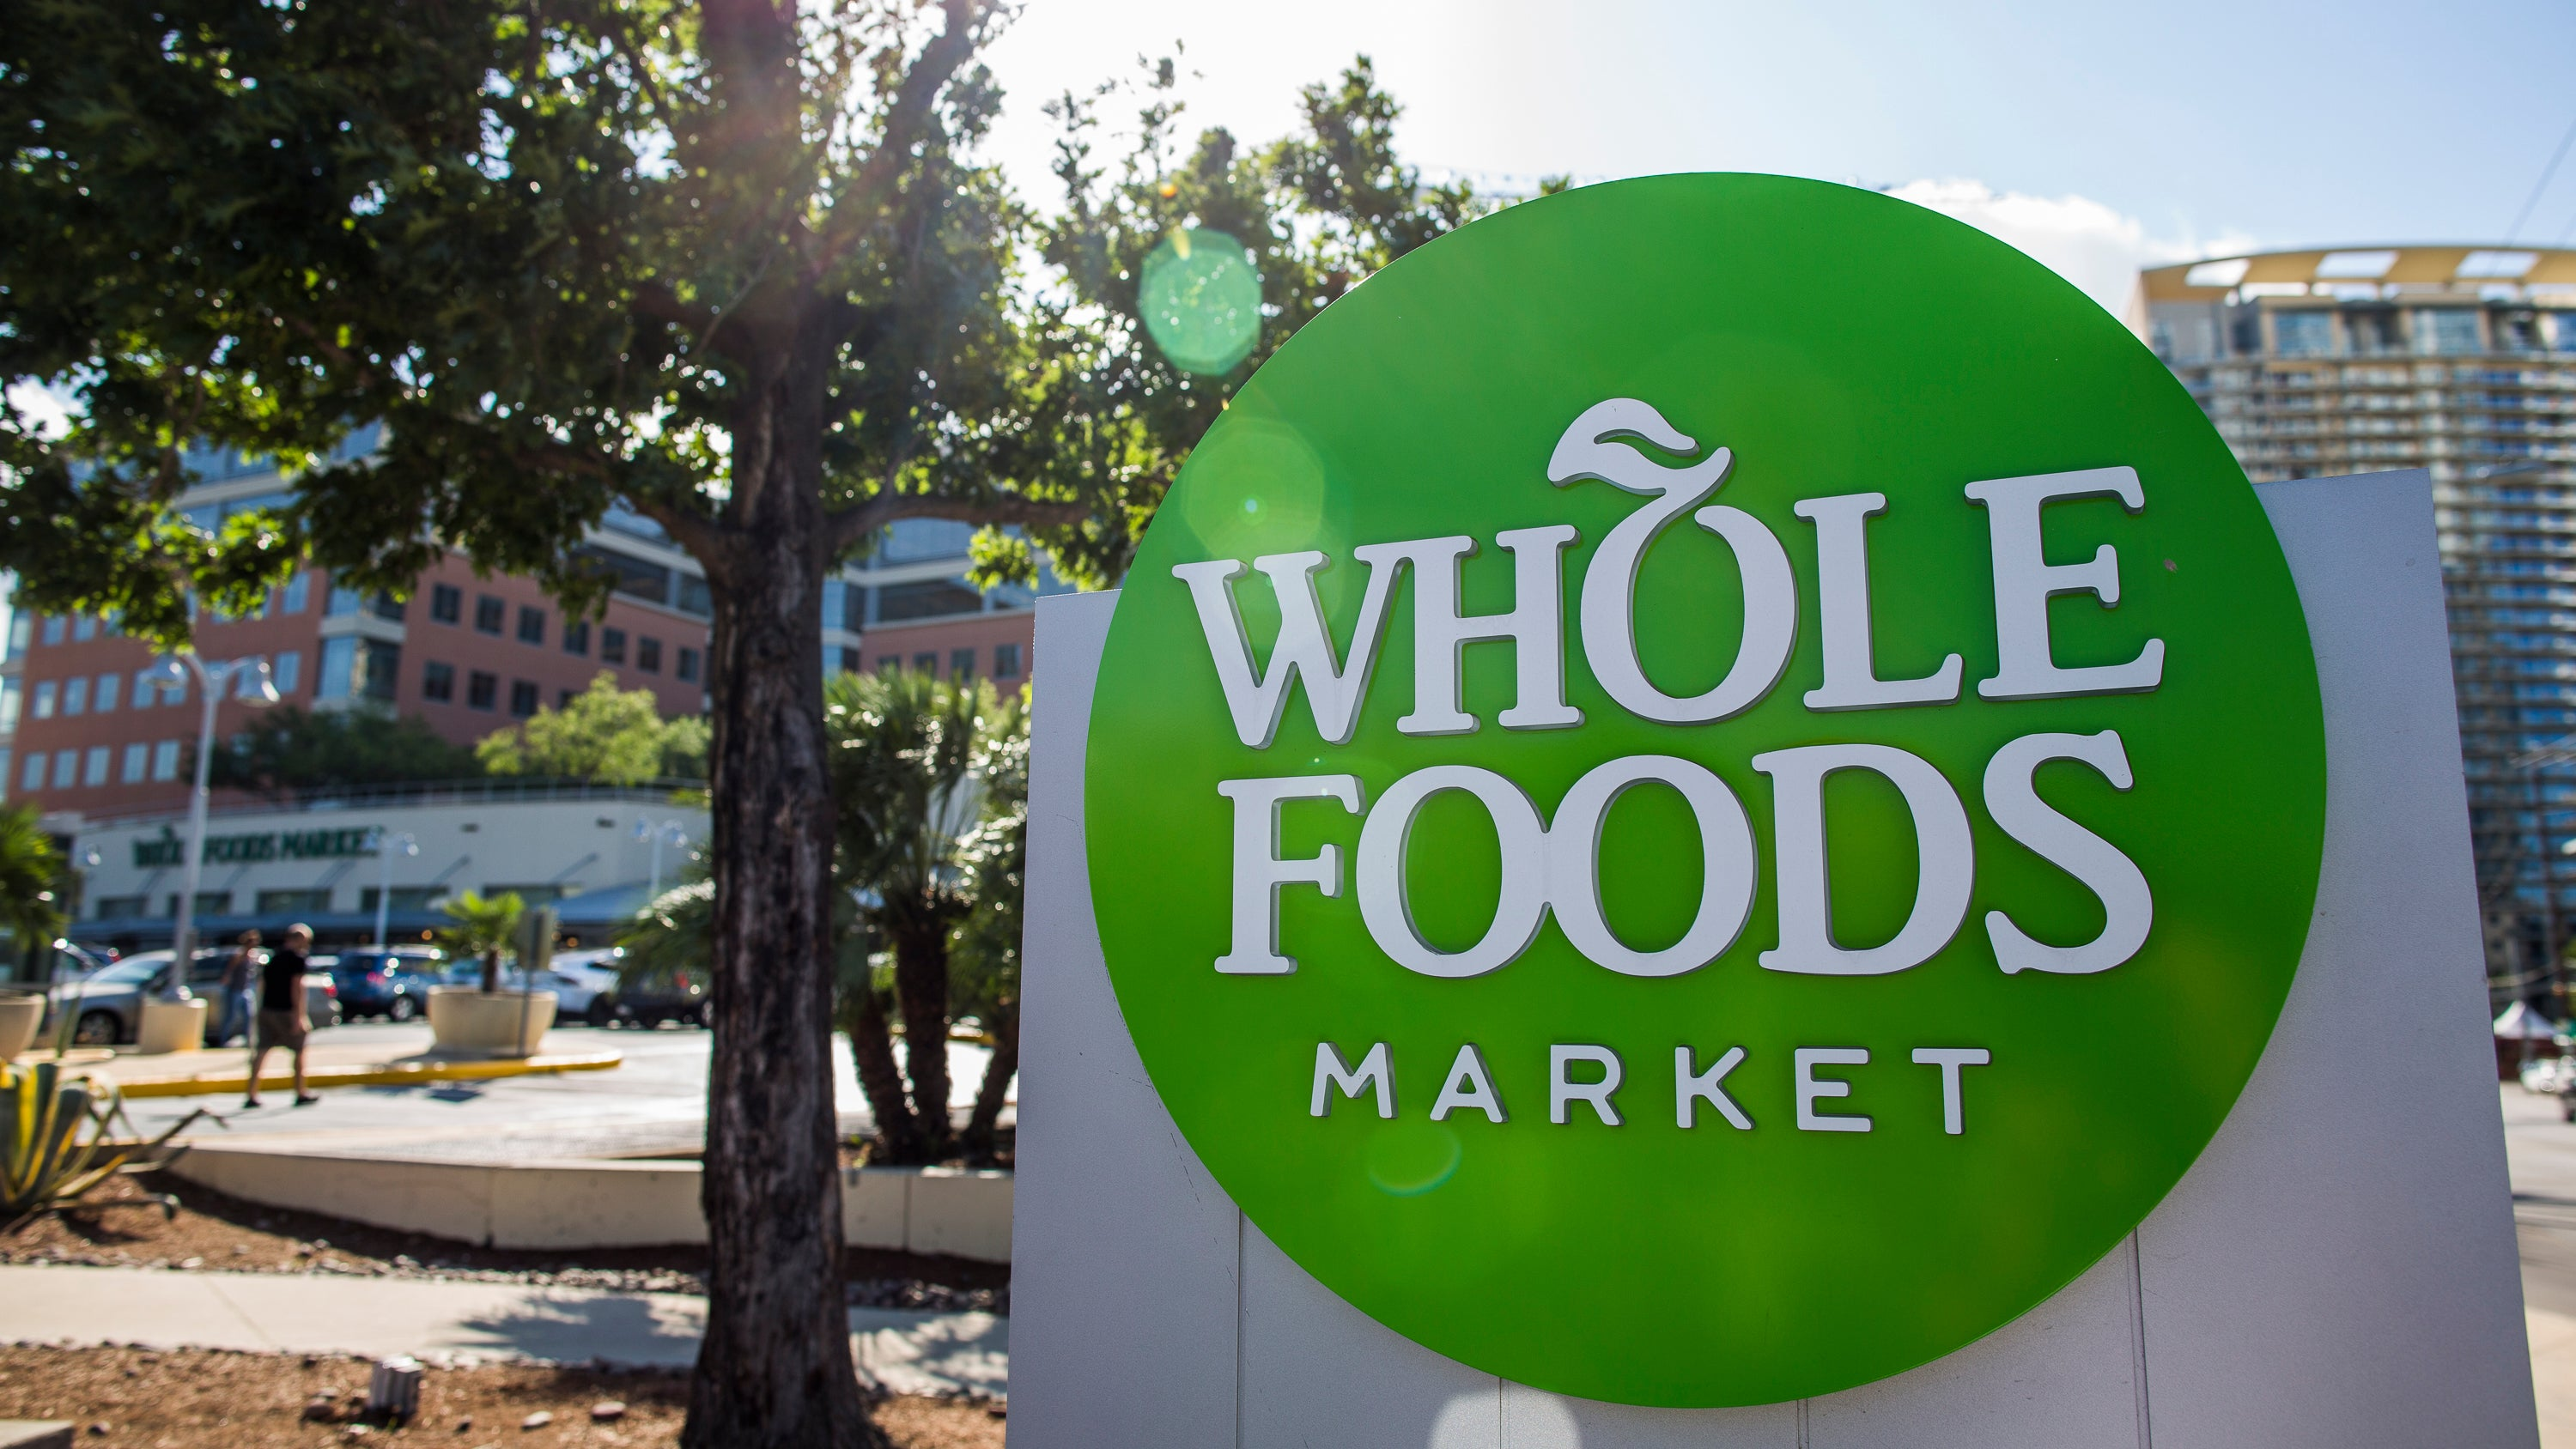 Whole Foods manages to make salmon consumers abandon its competitors